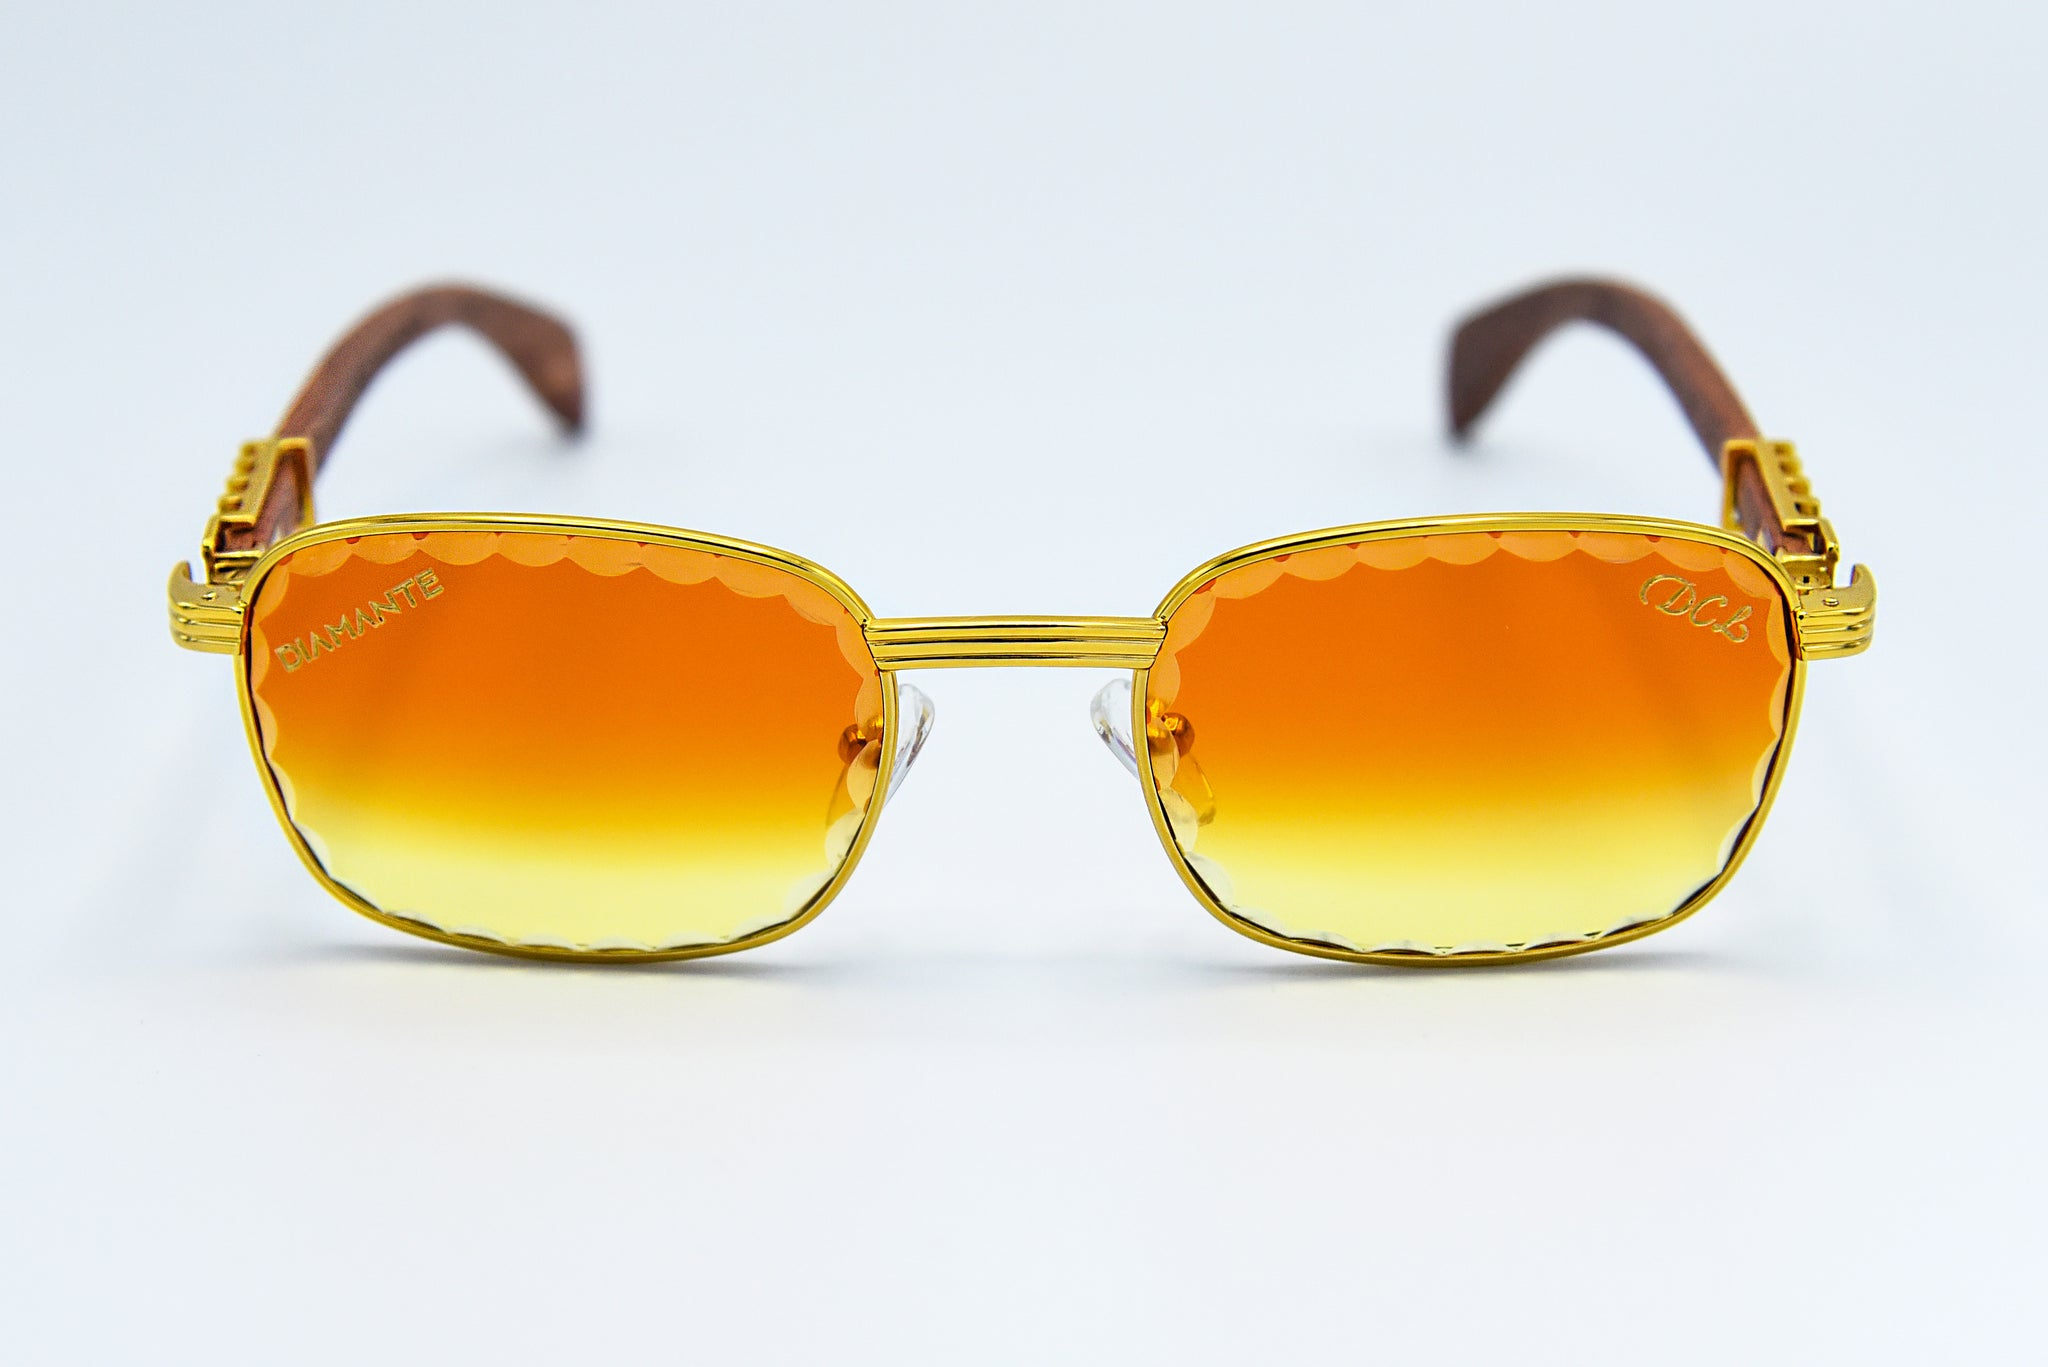 Fire Fade - Scallop Cut Lenses - Michelangelo